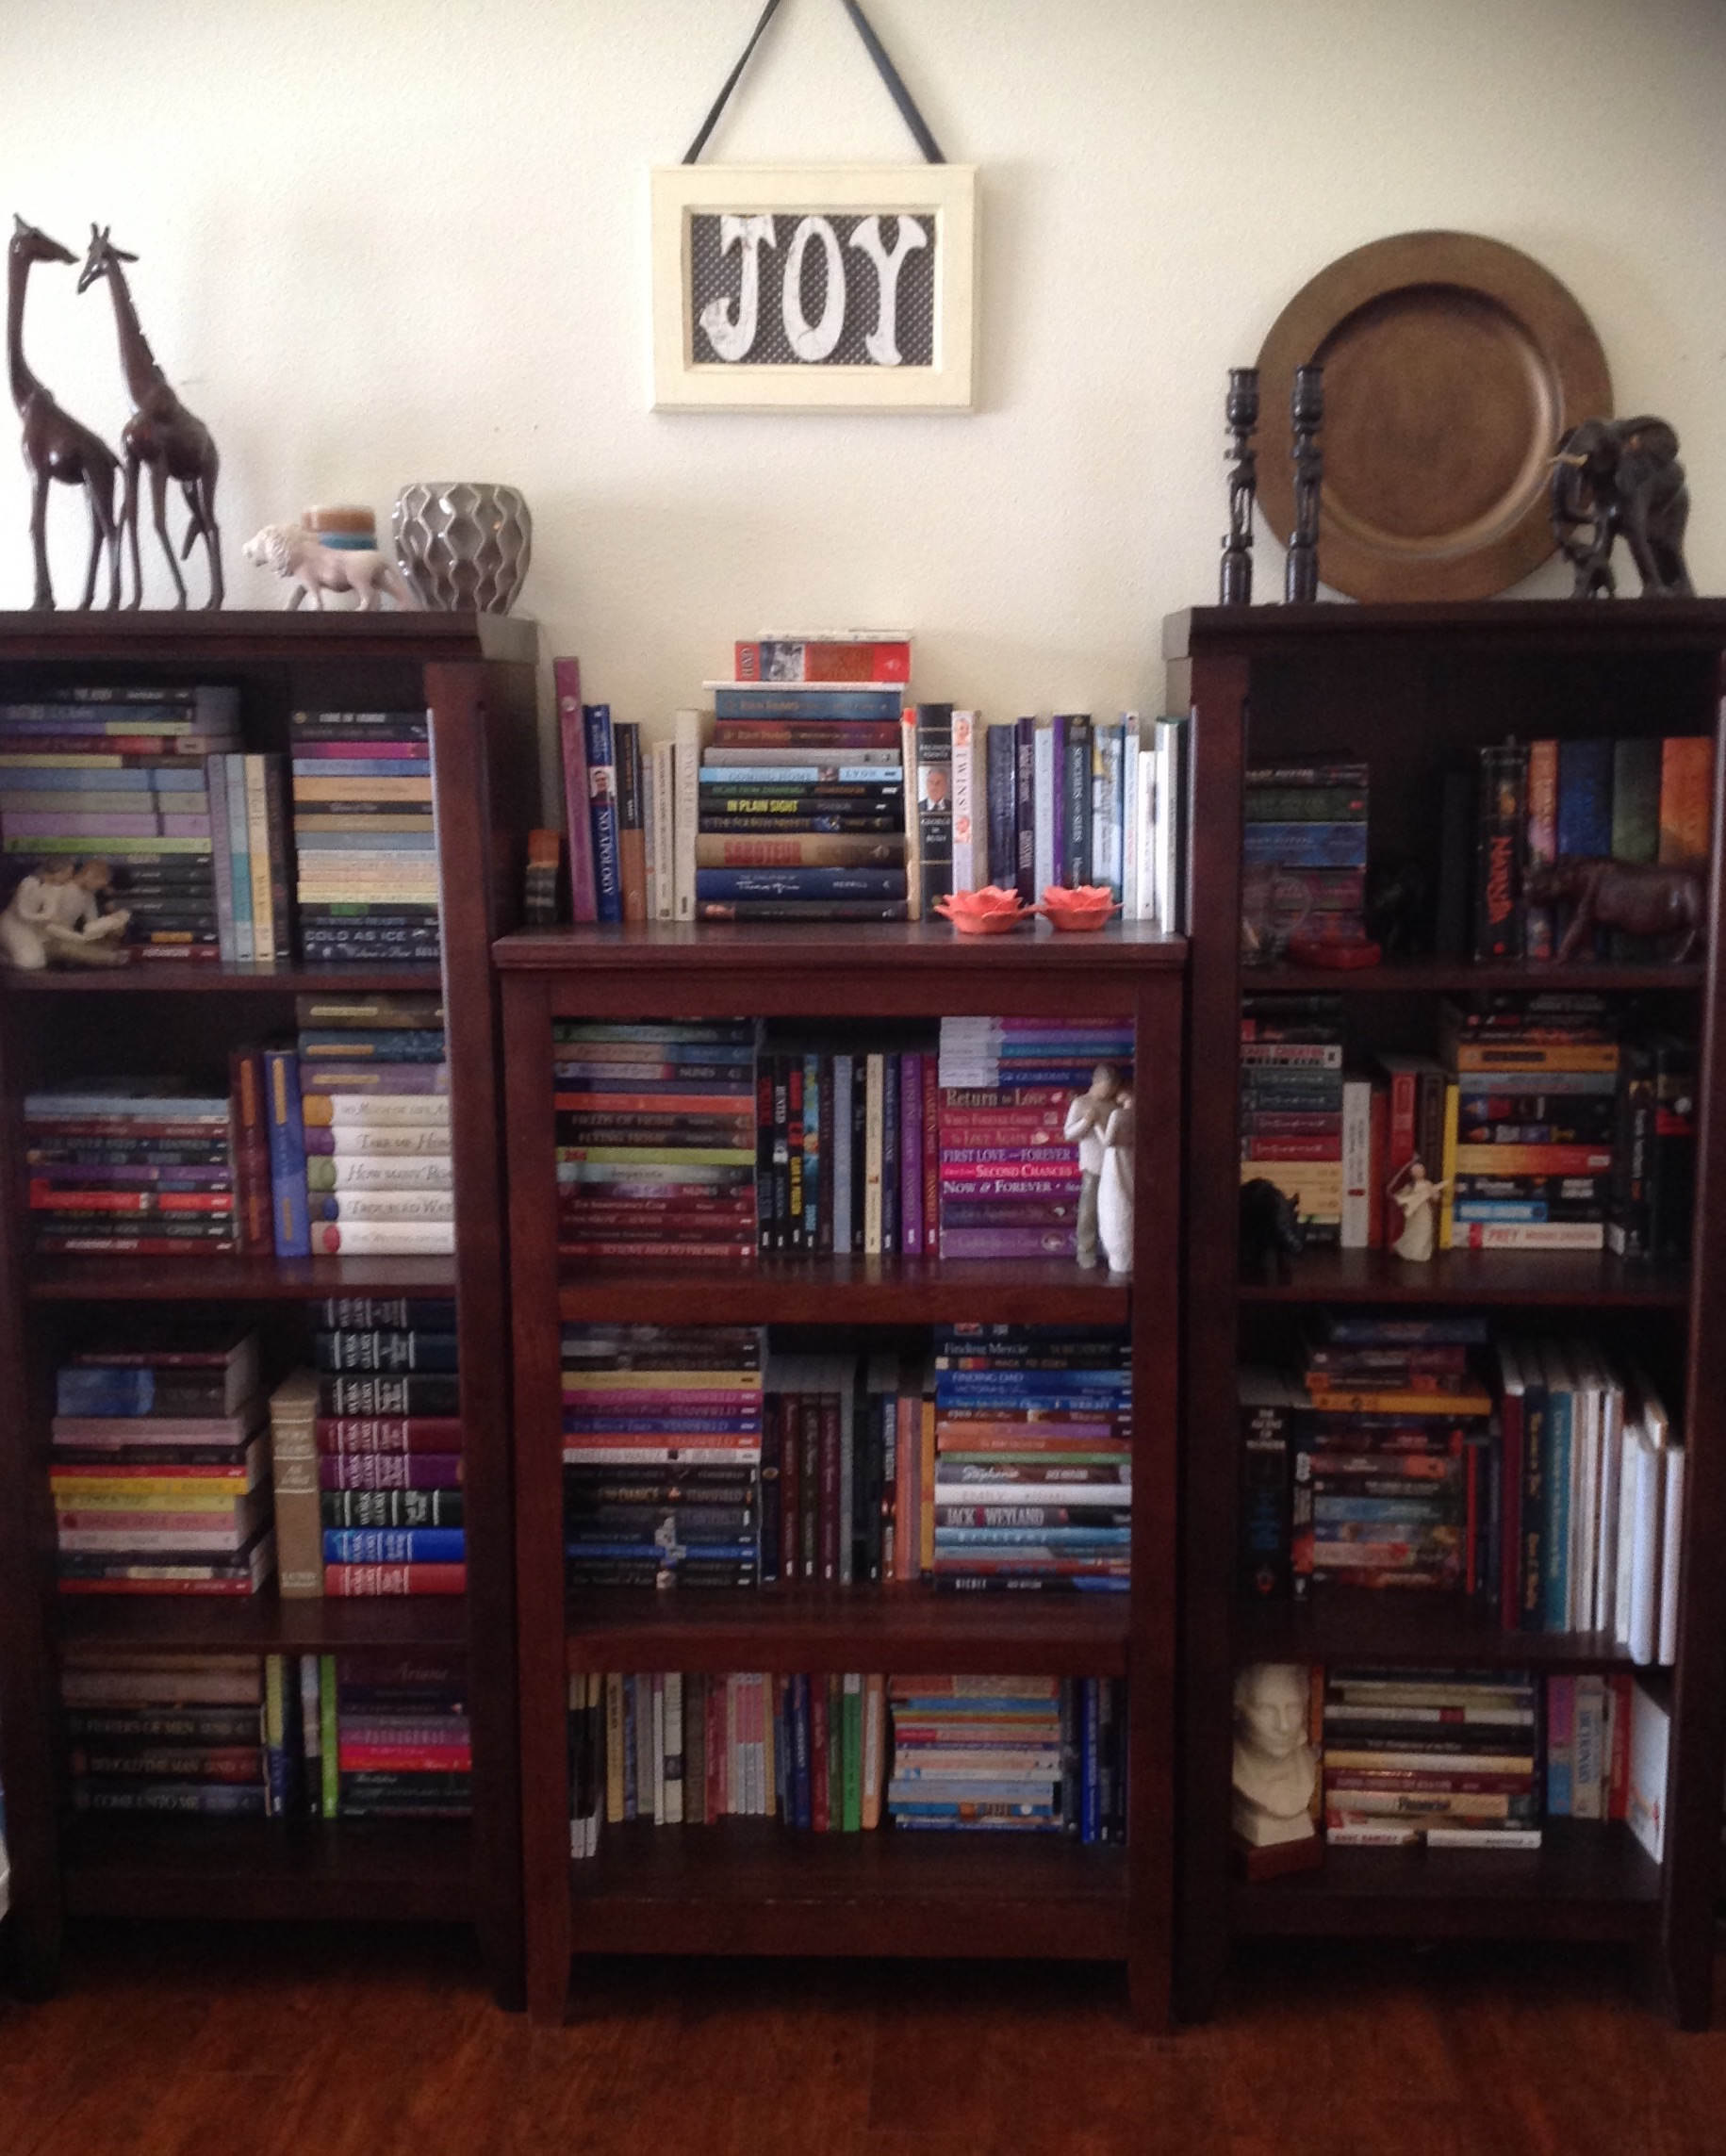 Clutter Free Challenge: Day 5